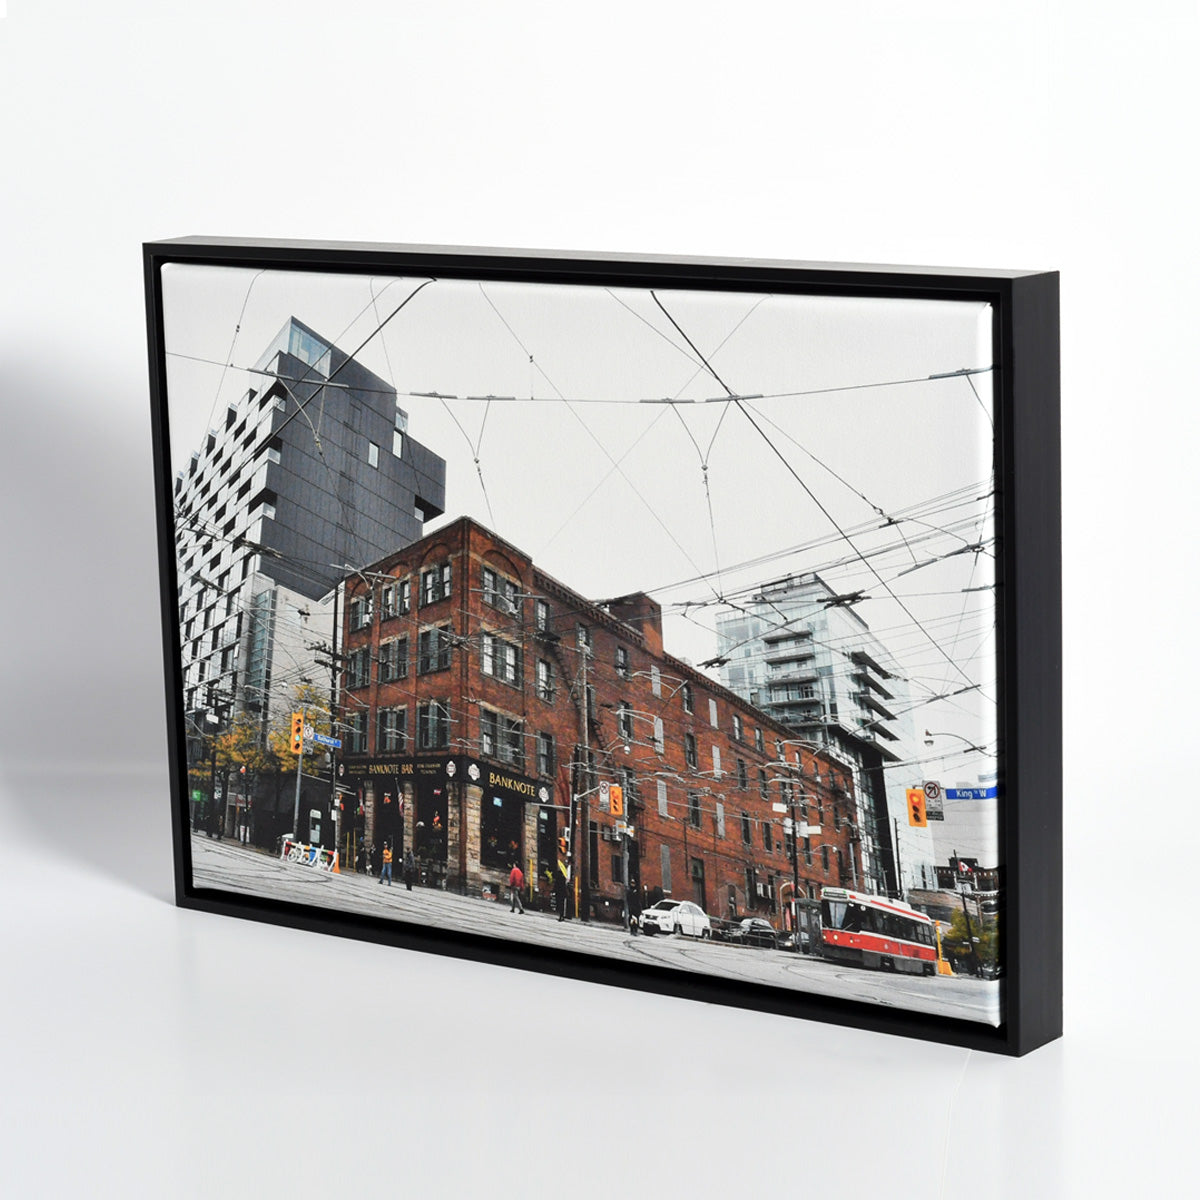 Toronto Street Photography Printed on Canvas and Framed by Posterjack Canada